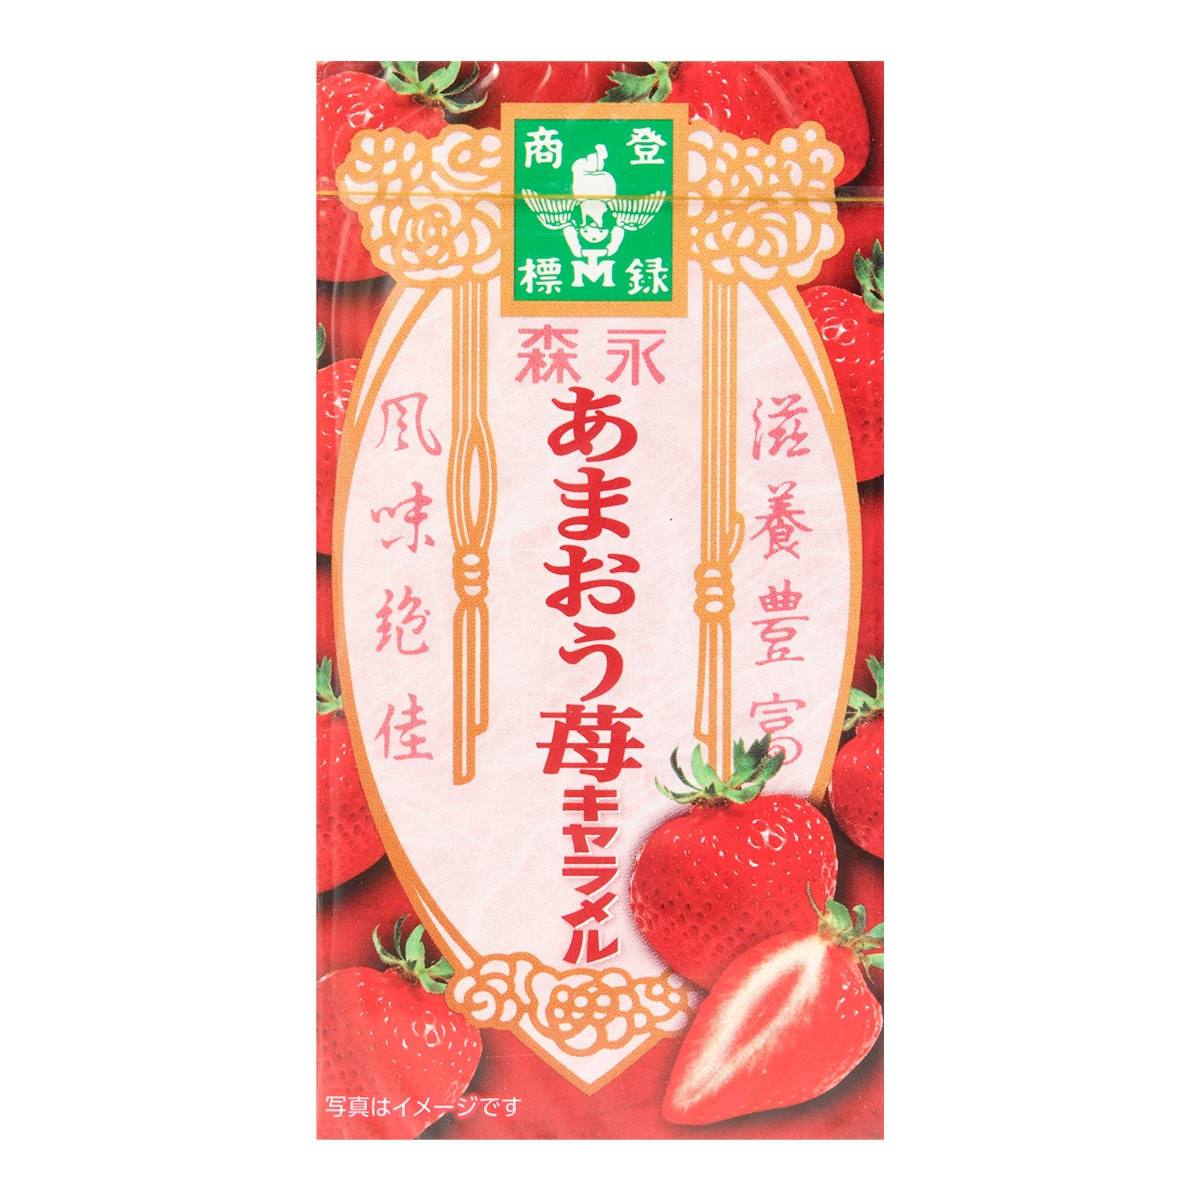 MORINAGA Amaou Strawberry Caramel 12pcs